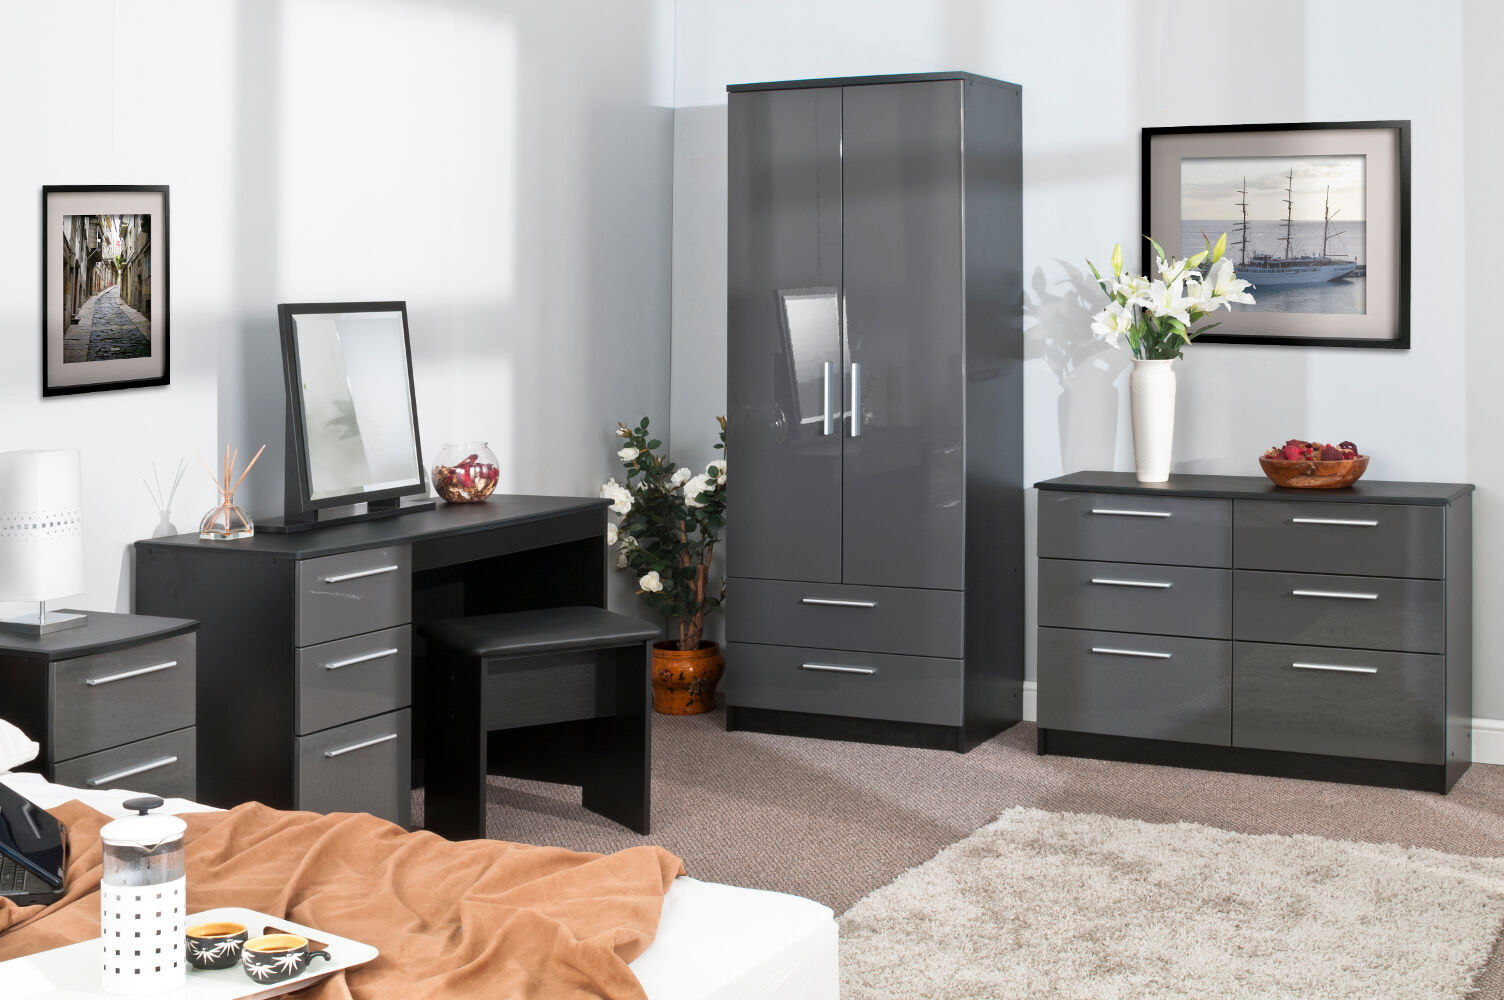 Bedroom furniture high gloss grey on black wardrobe chest for High gloss bedroom furniture